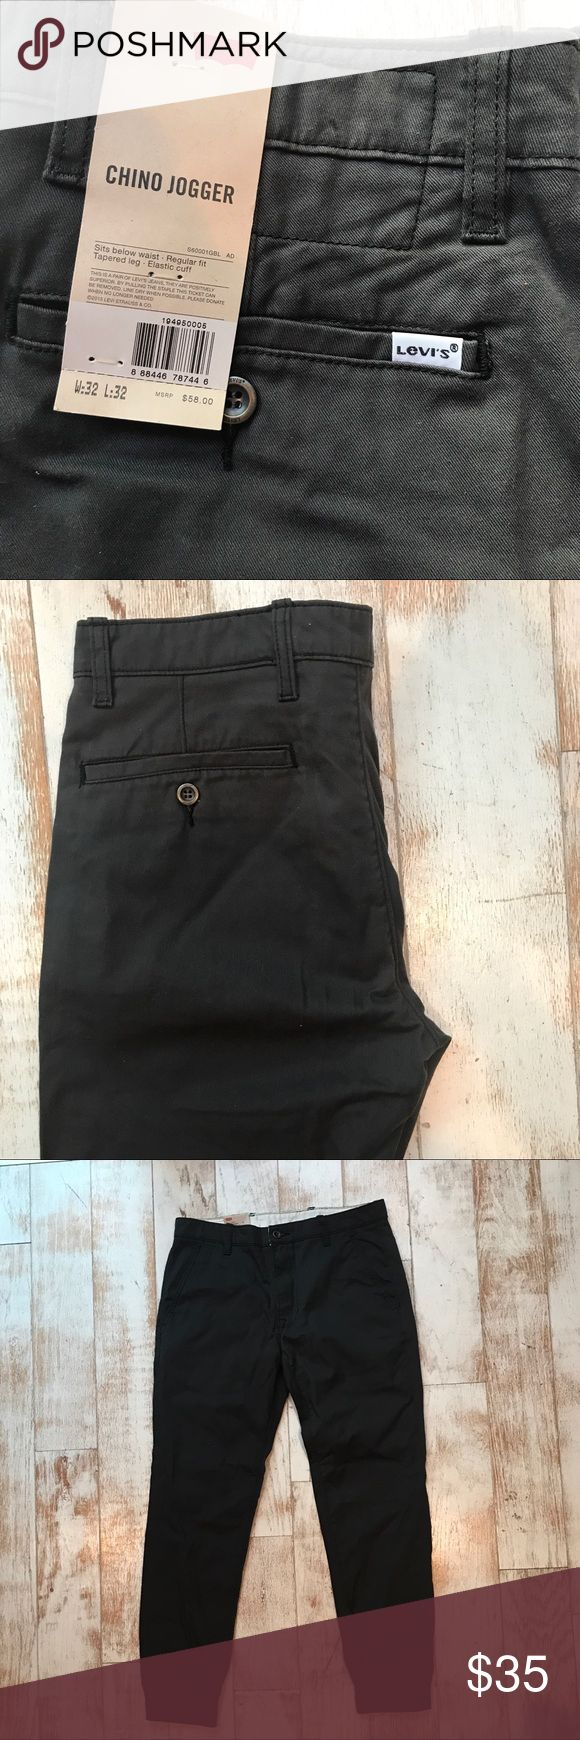 Levi's Chino Jogger Brand new Levi's black joggers. Lightweight and perfect for summer. Levi's Pants Chinos & Khakis